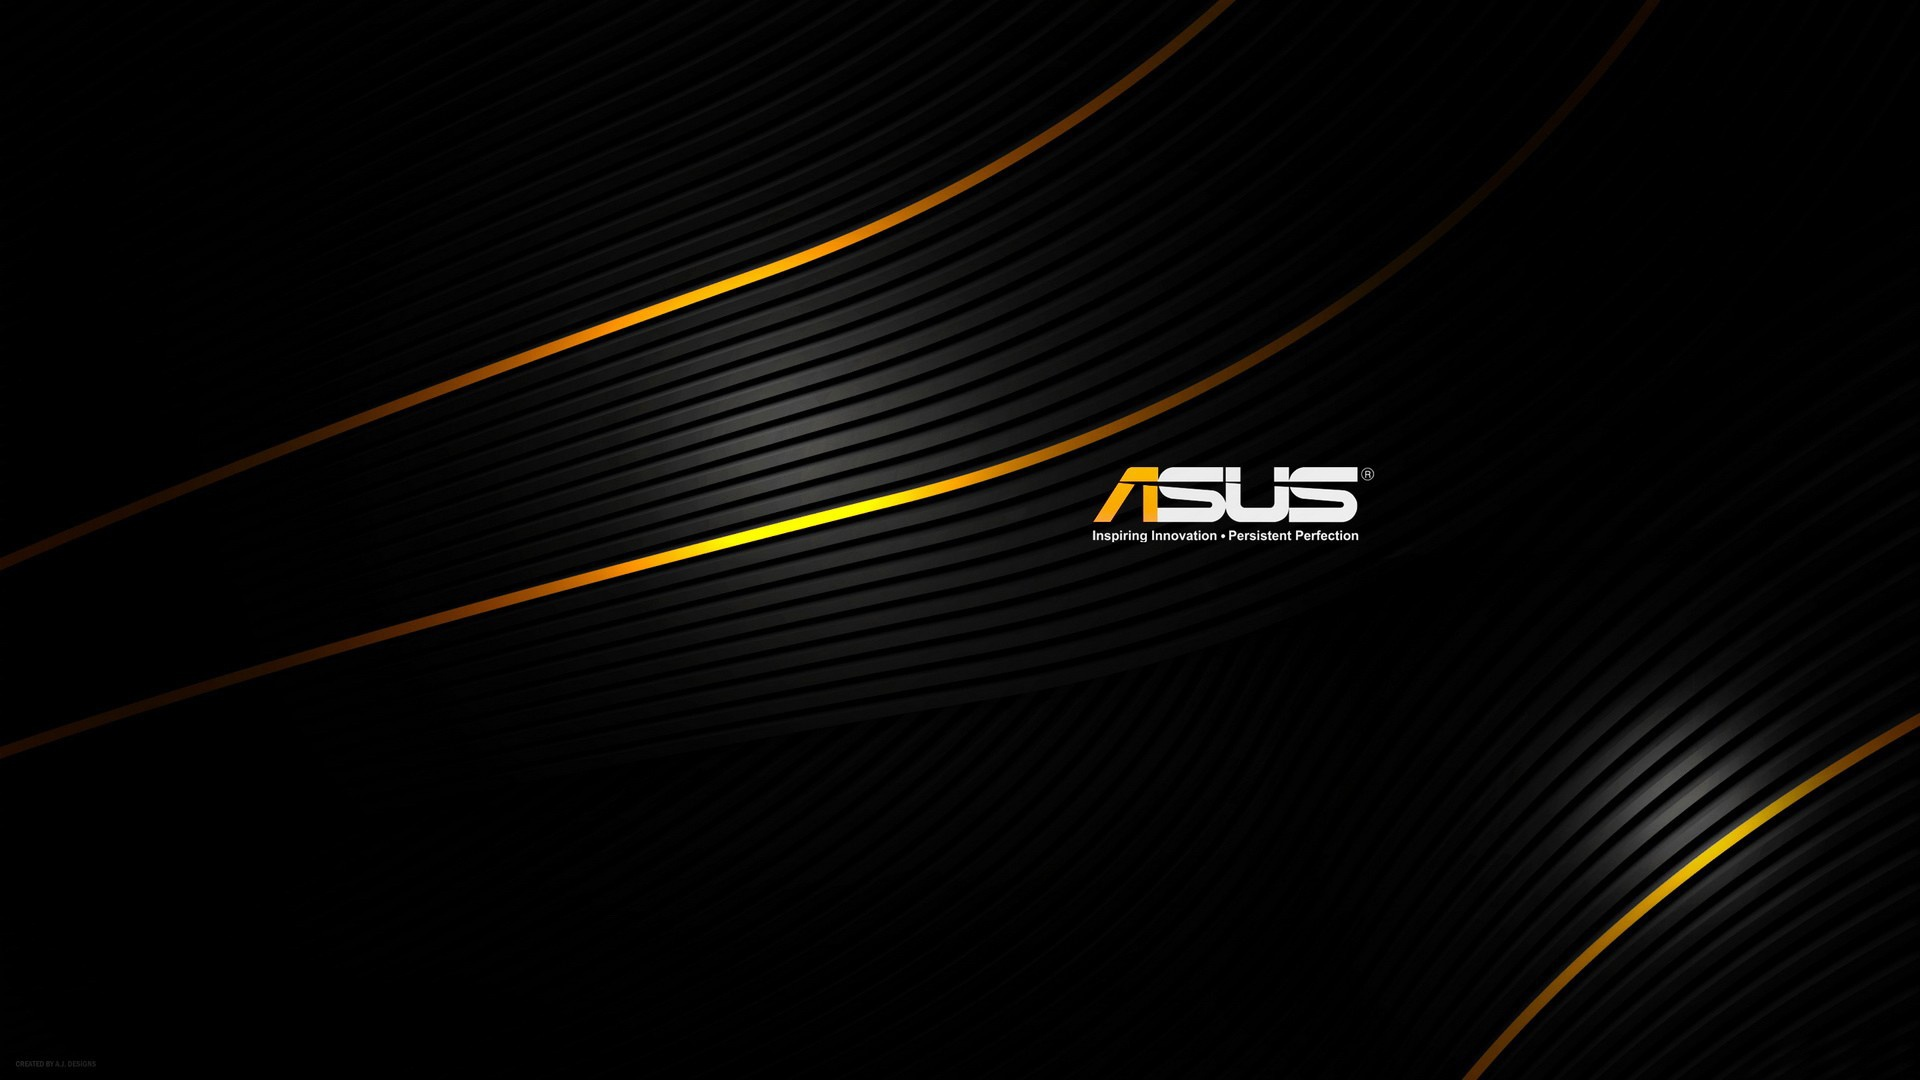 Asus Black Background Wallpapers   1920x1080   250550 1920x1080